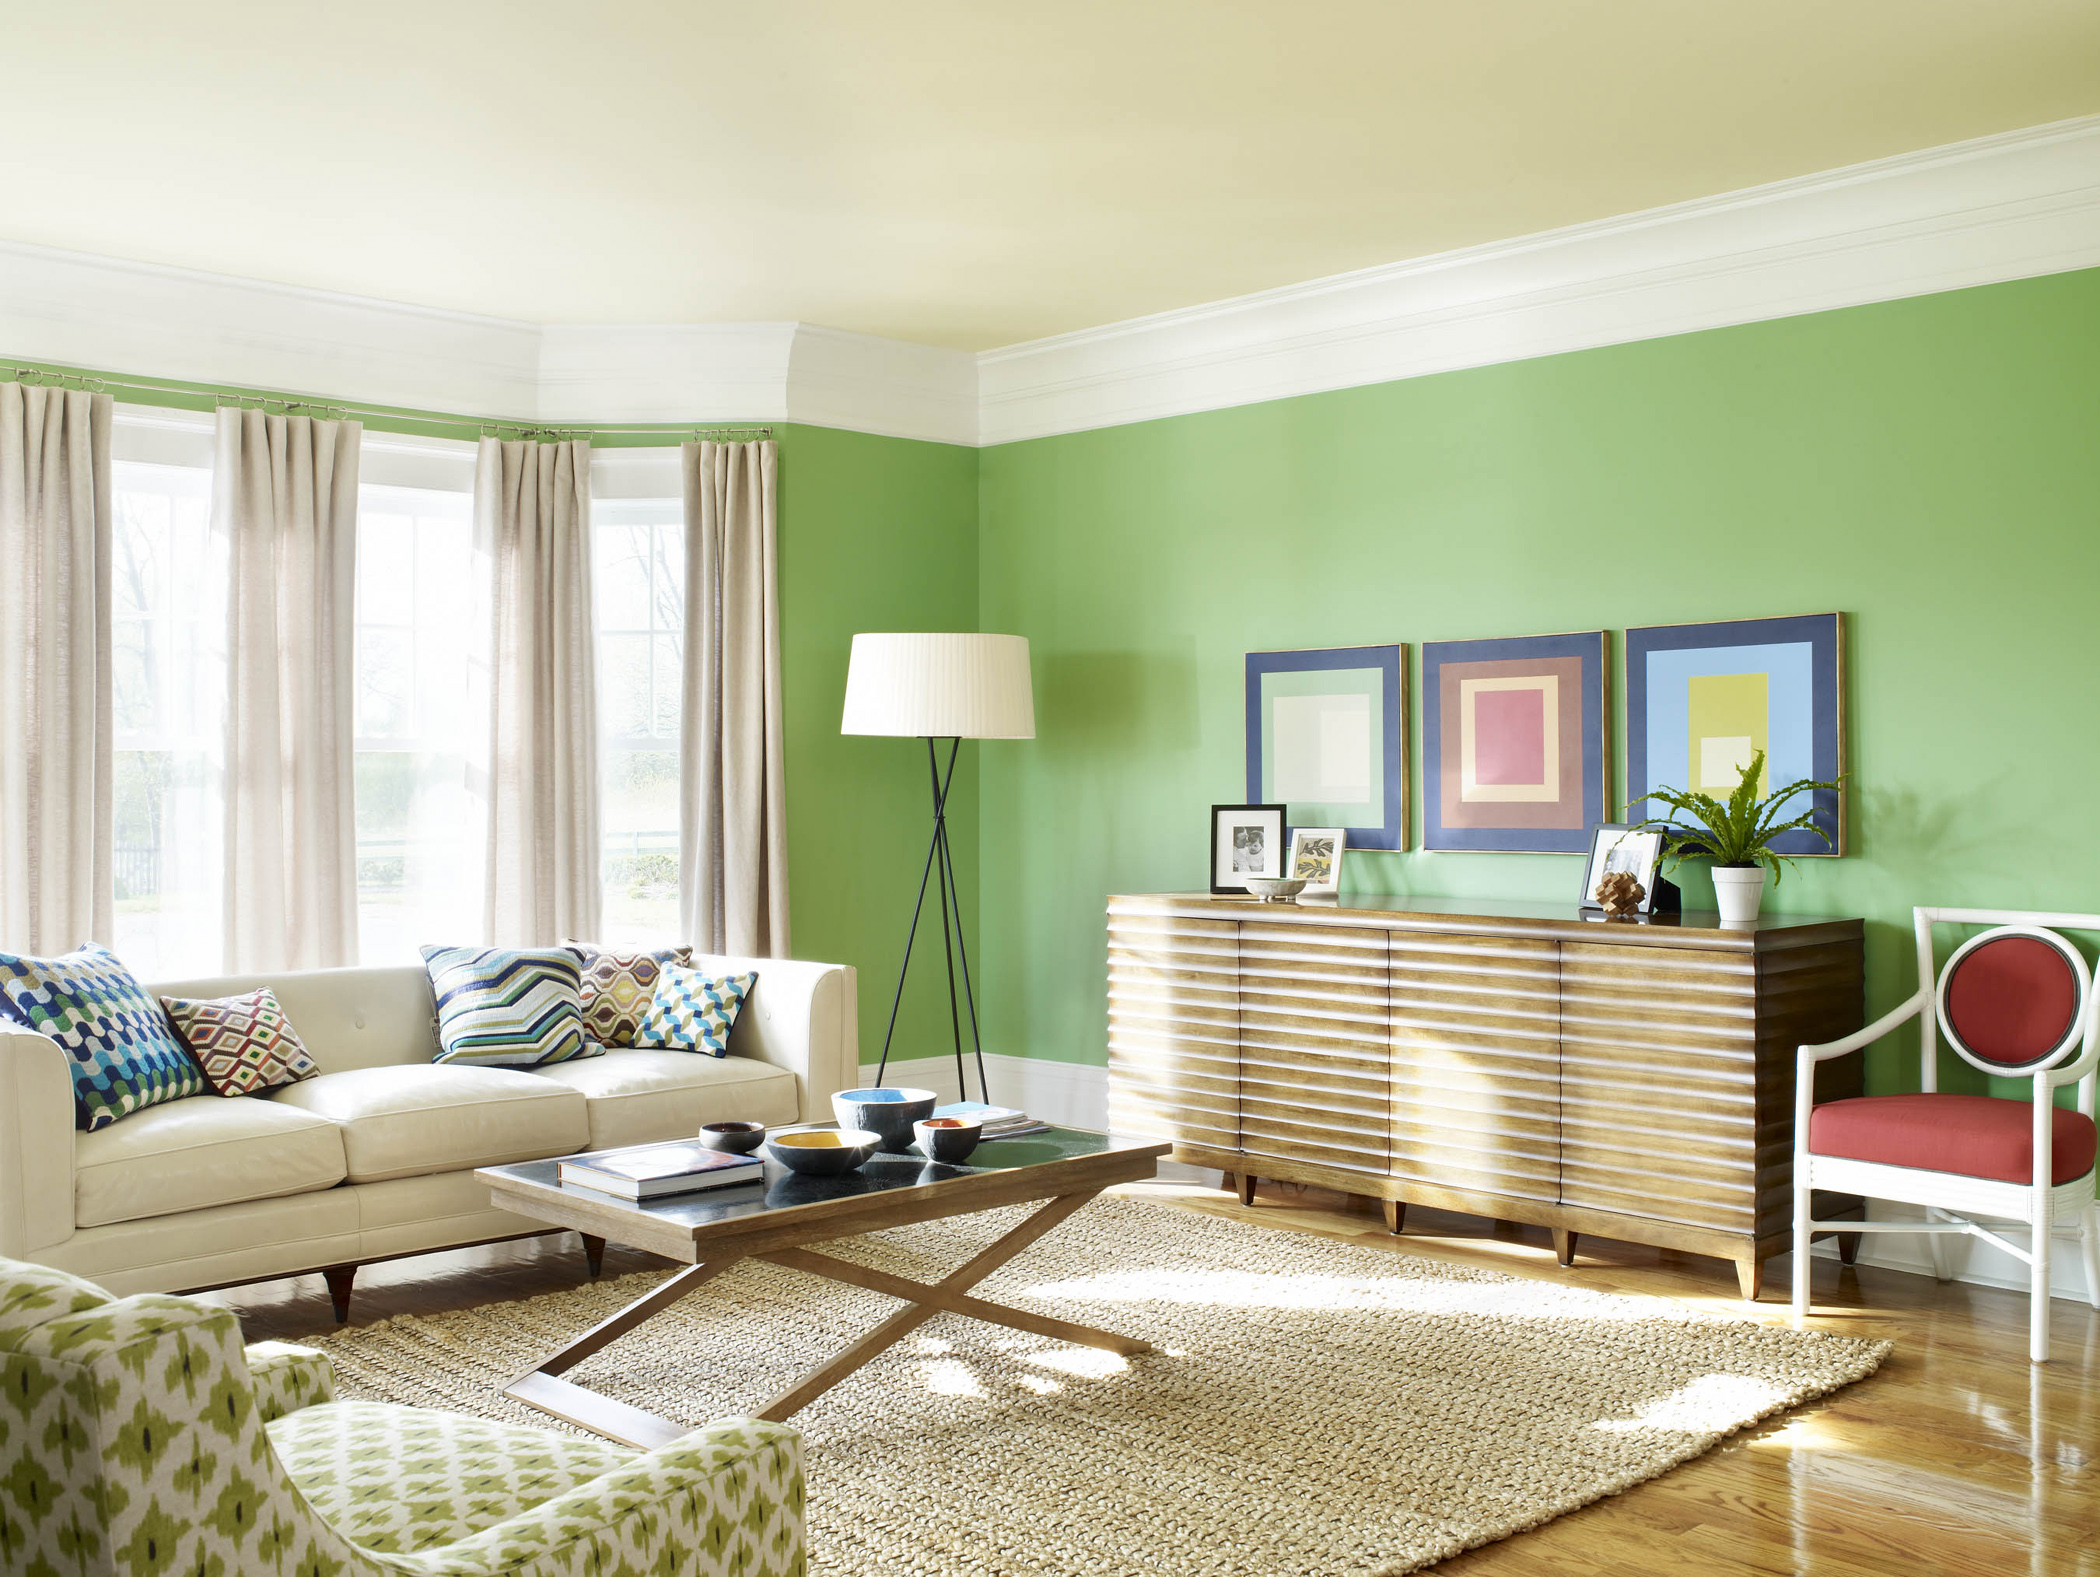 Decorating Ideas For Living Room With Green Wall